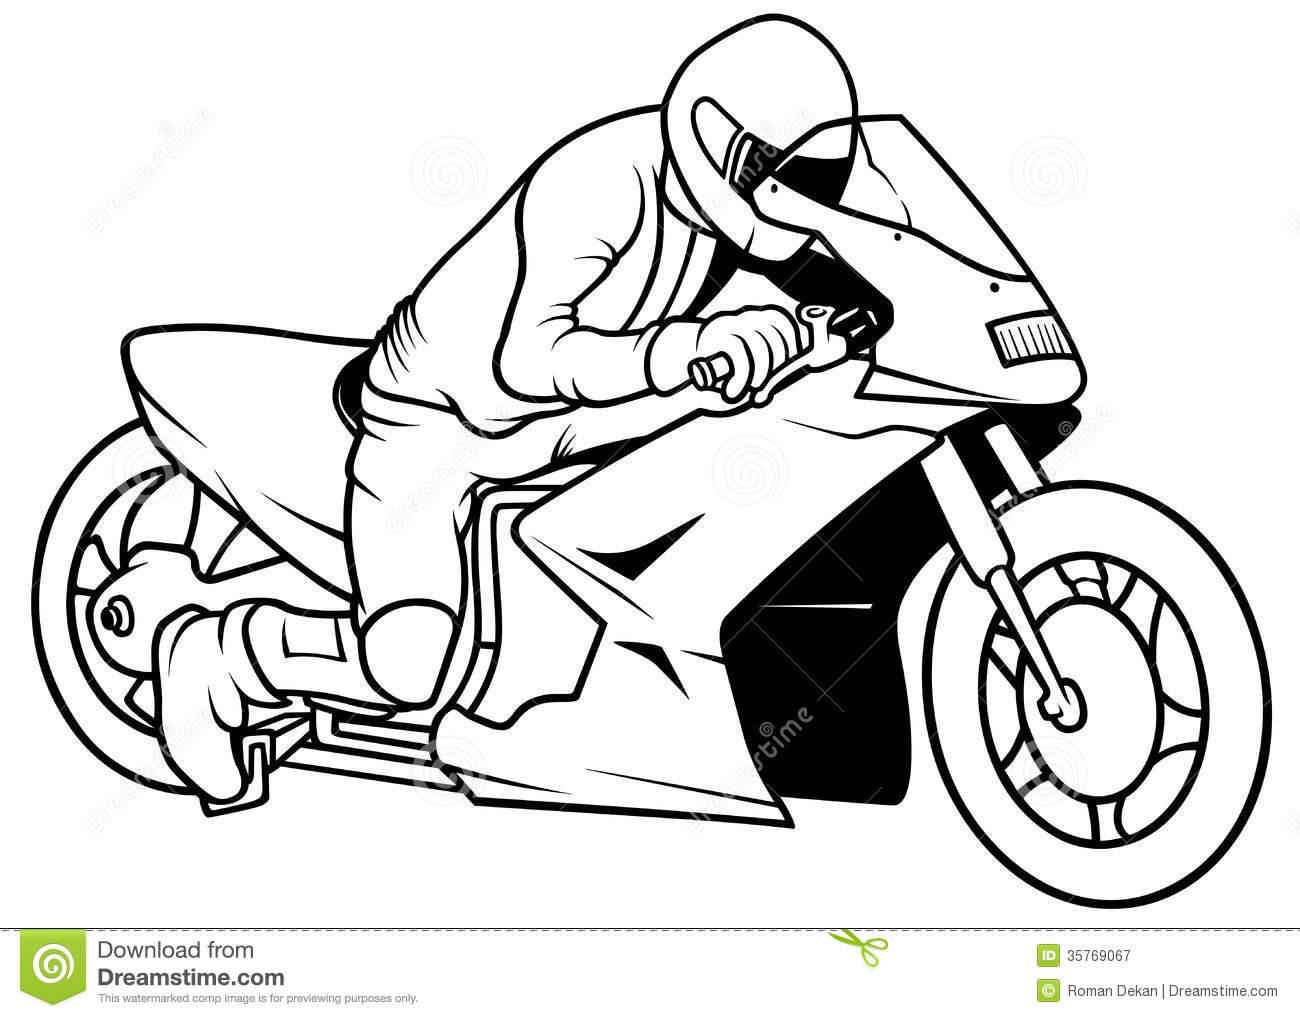 Couple riding motorcycle black and white clipart png download Motorcycle Clipart Black And White | Free download best ... png download